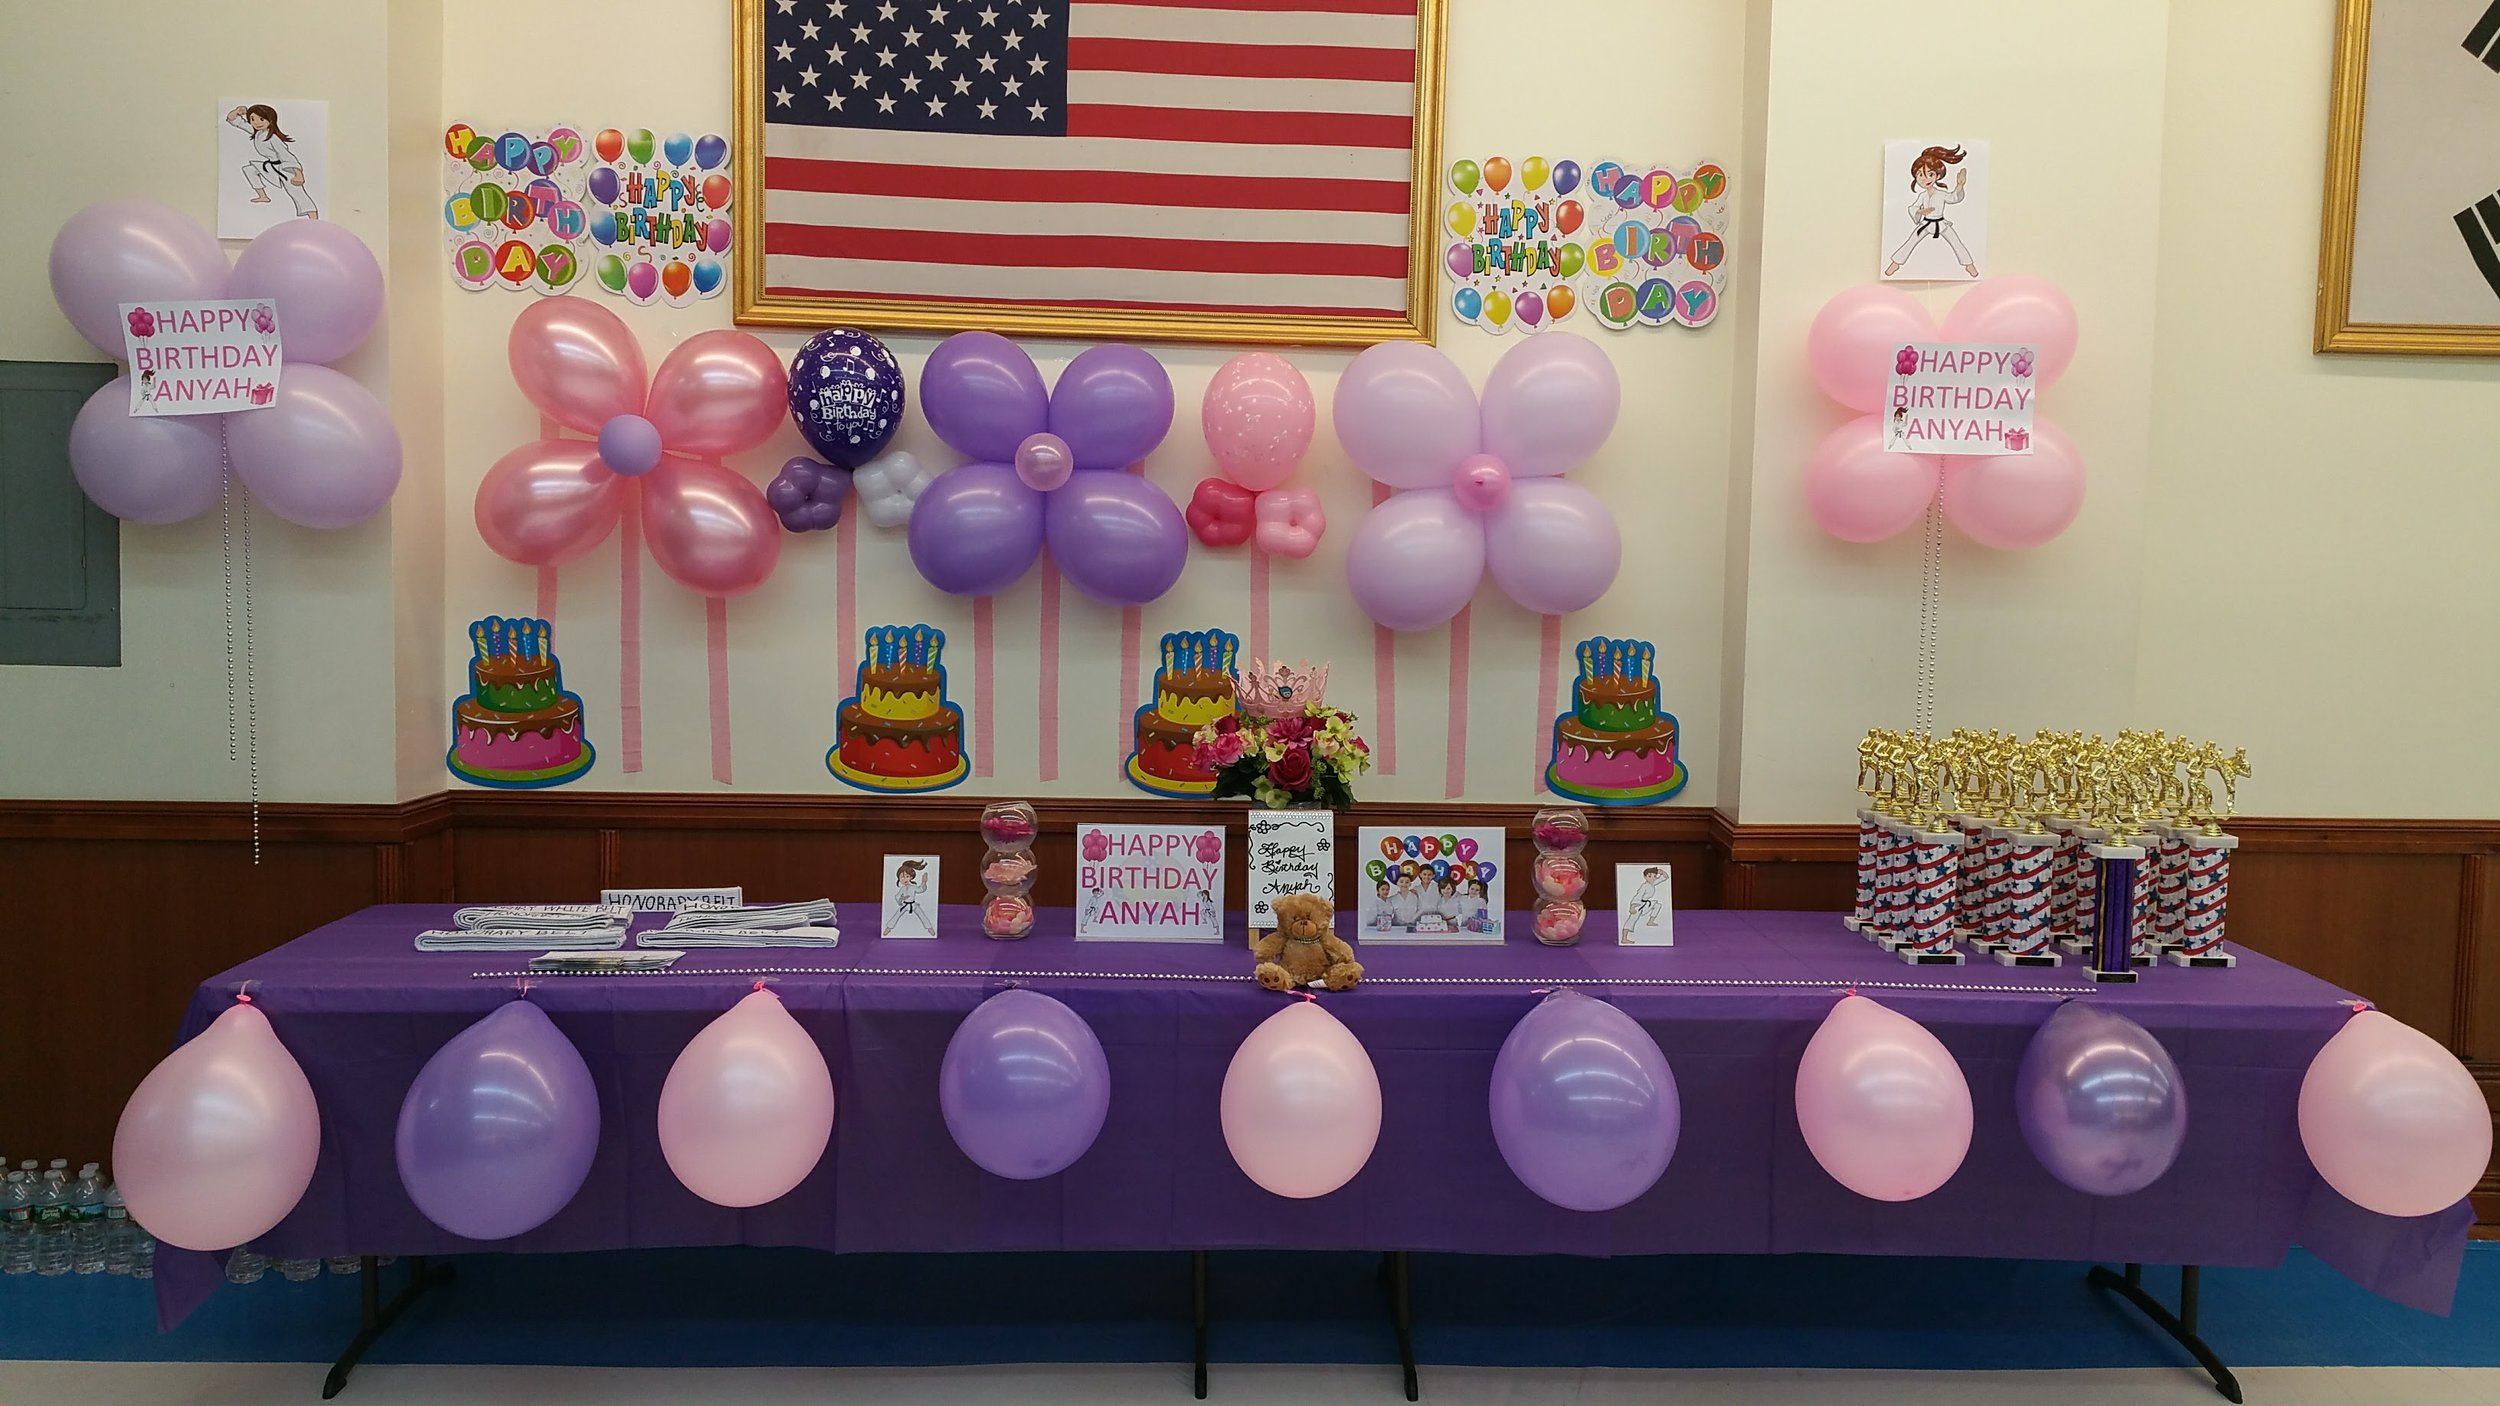 Pink & Purple Decorations for Anyah's Birthday Party